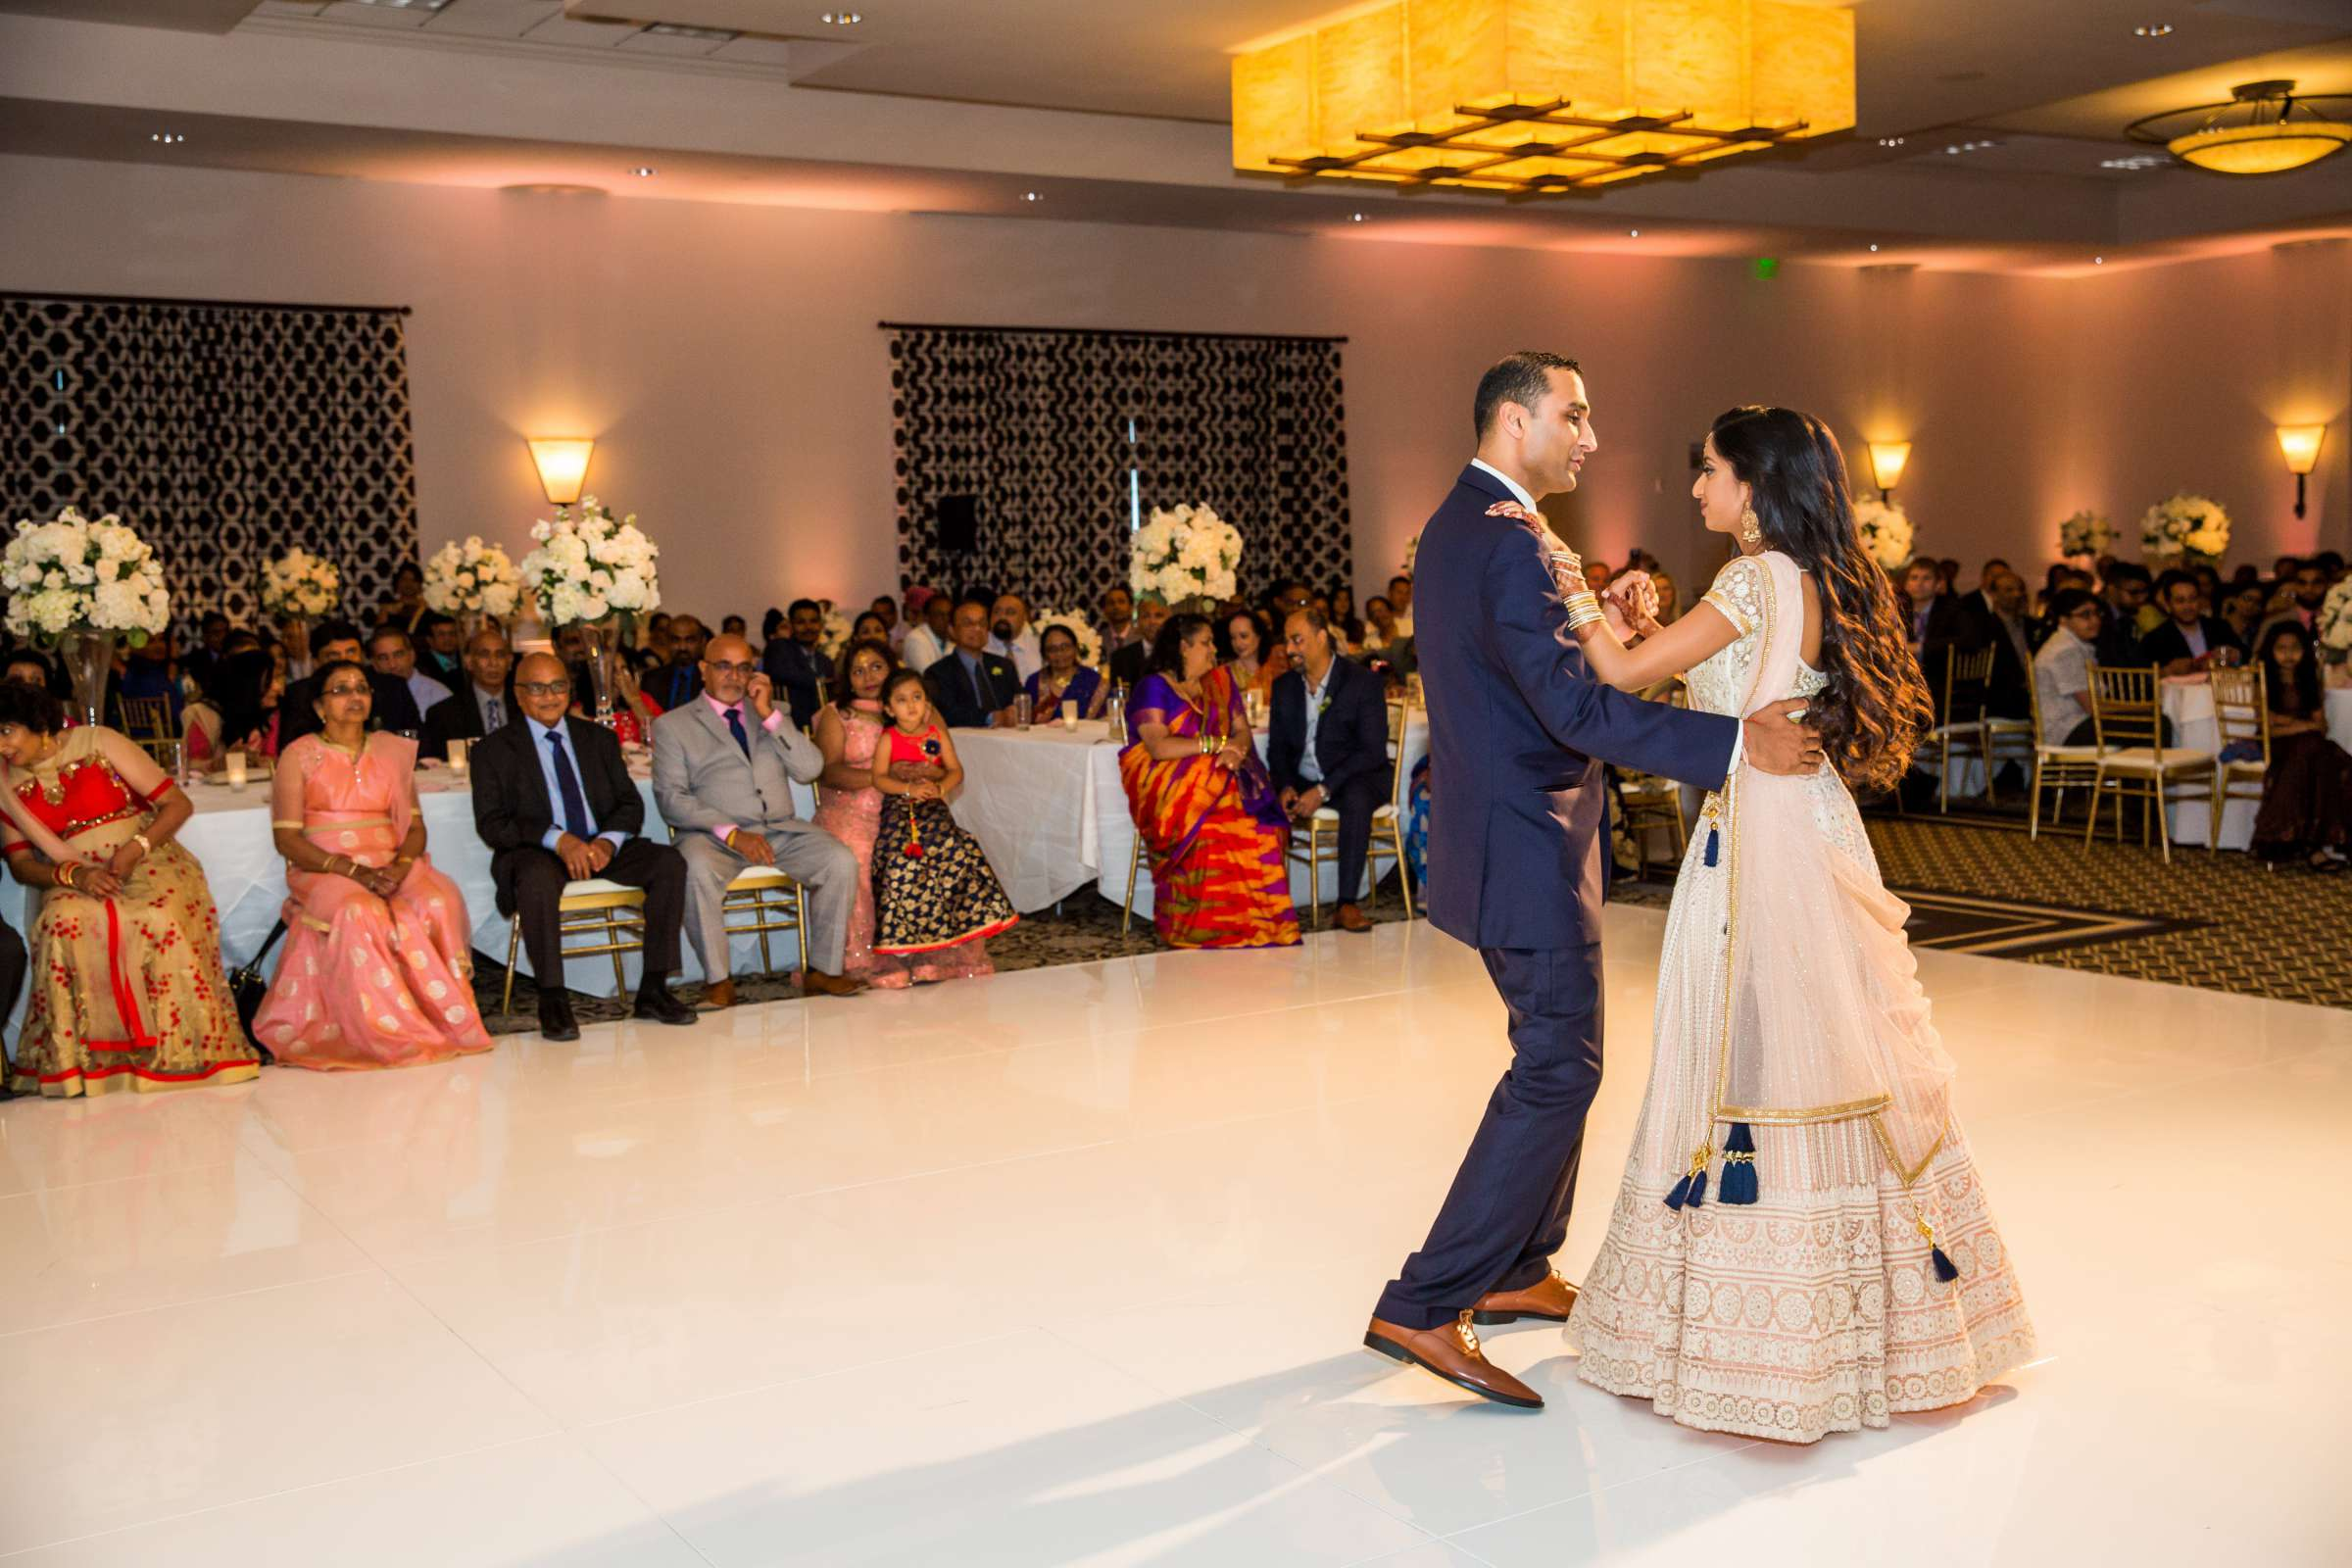 The Westin Carlsbad Resort and Spa Wedding coordinated by Shilpa Patel Events, Ami and Amit Wedding Photo #227 by True Photography